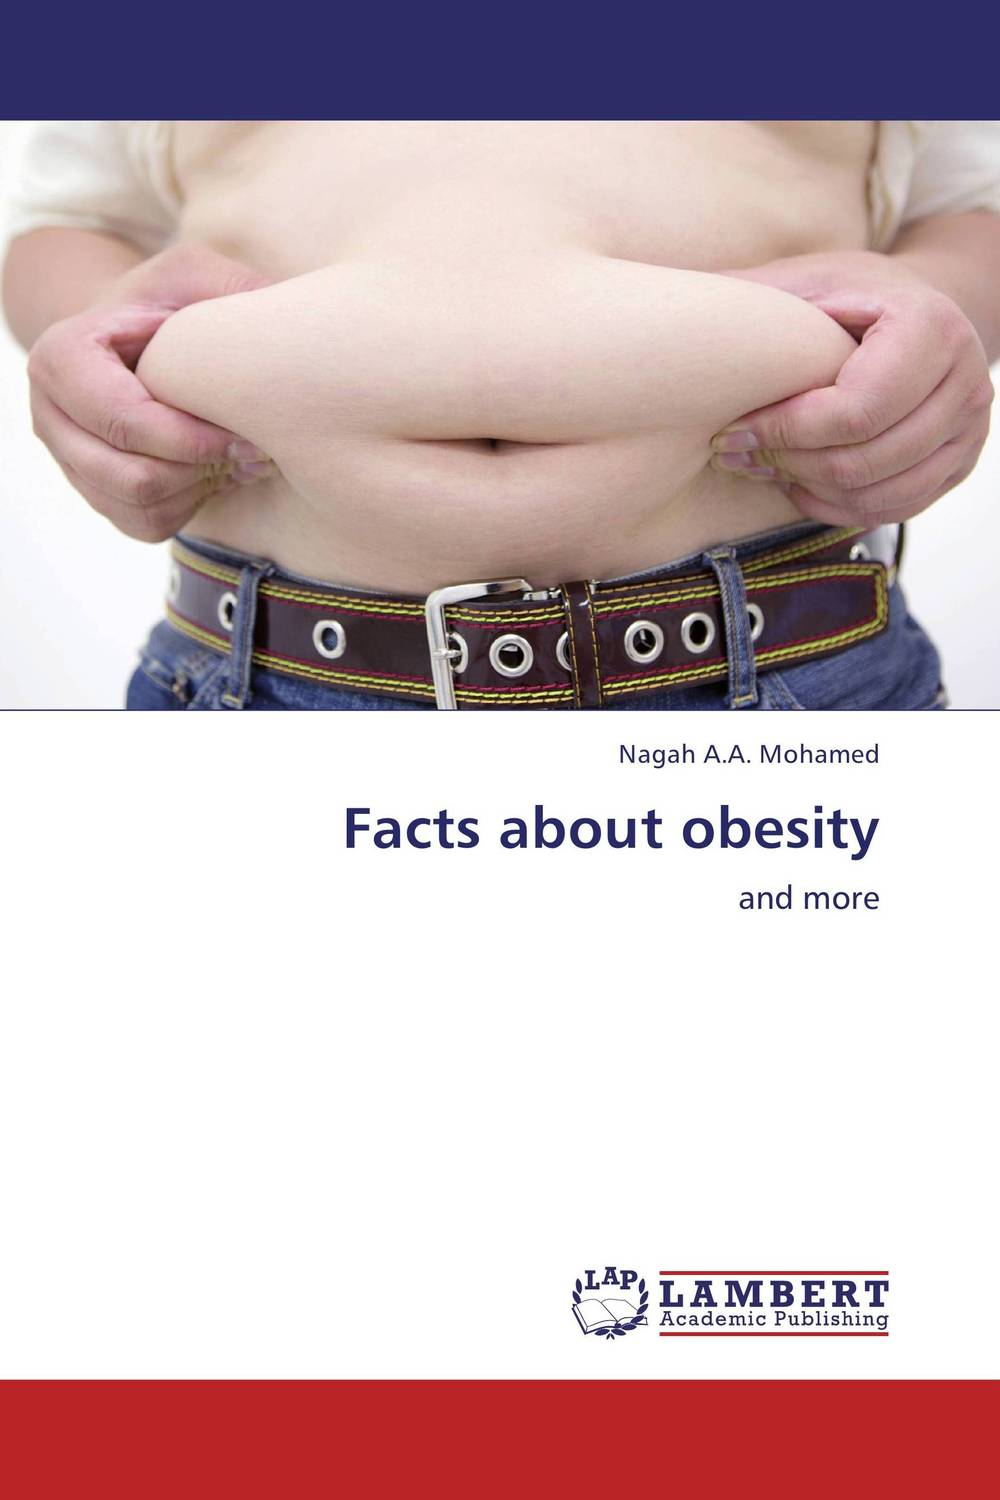 Facts about obesity effective interventions for managing overweight and obesity in adults